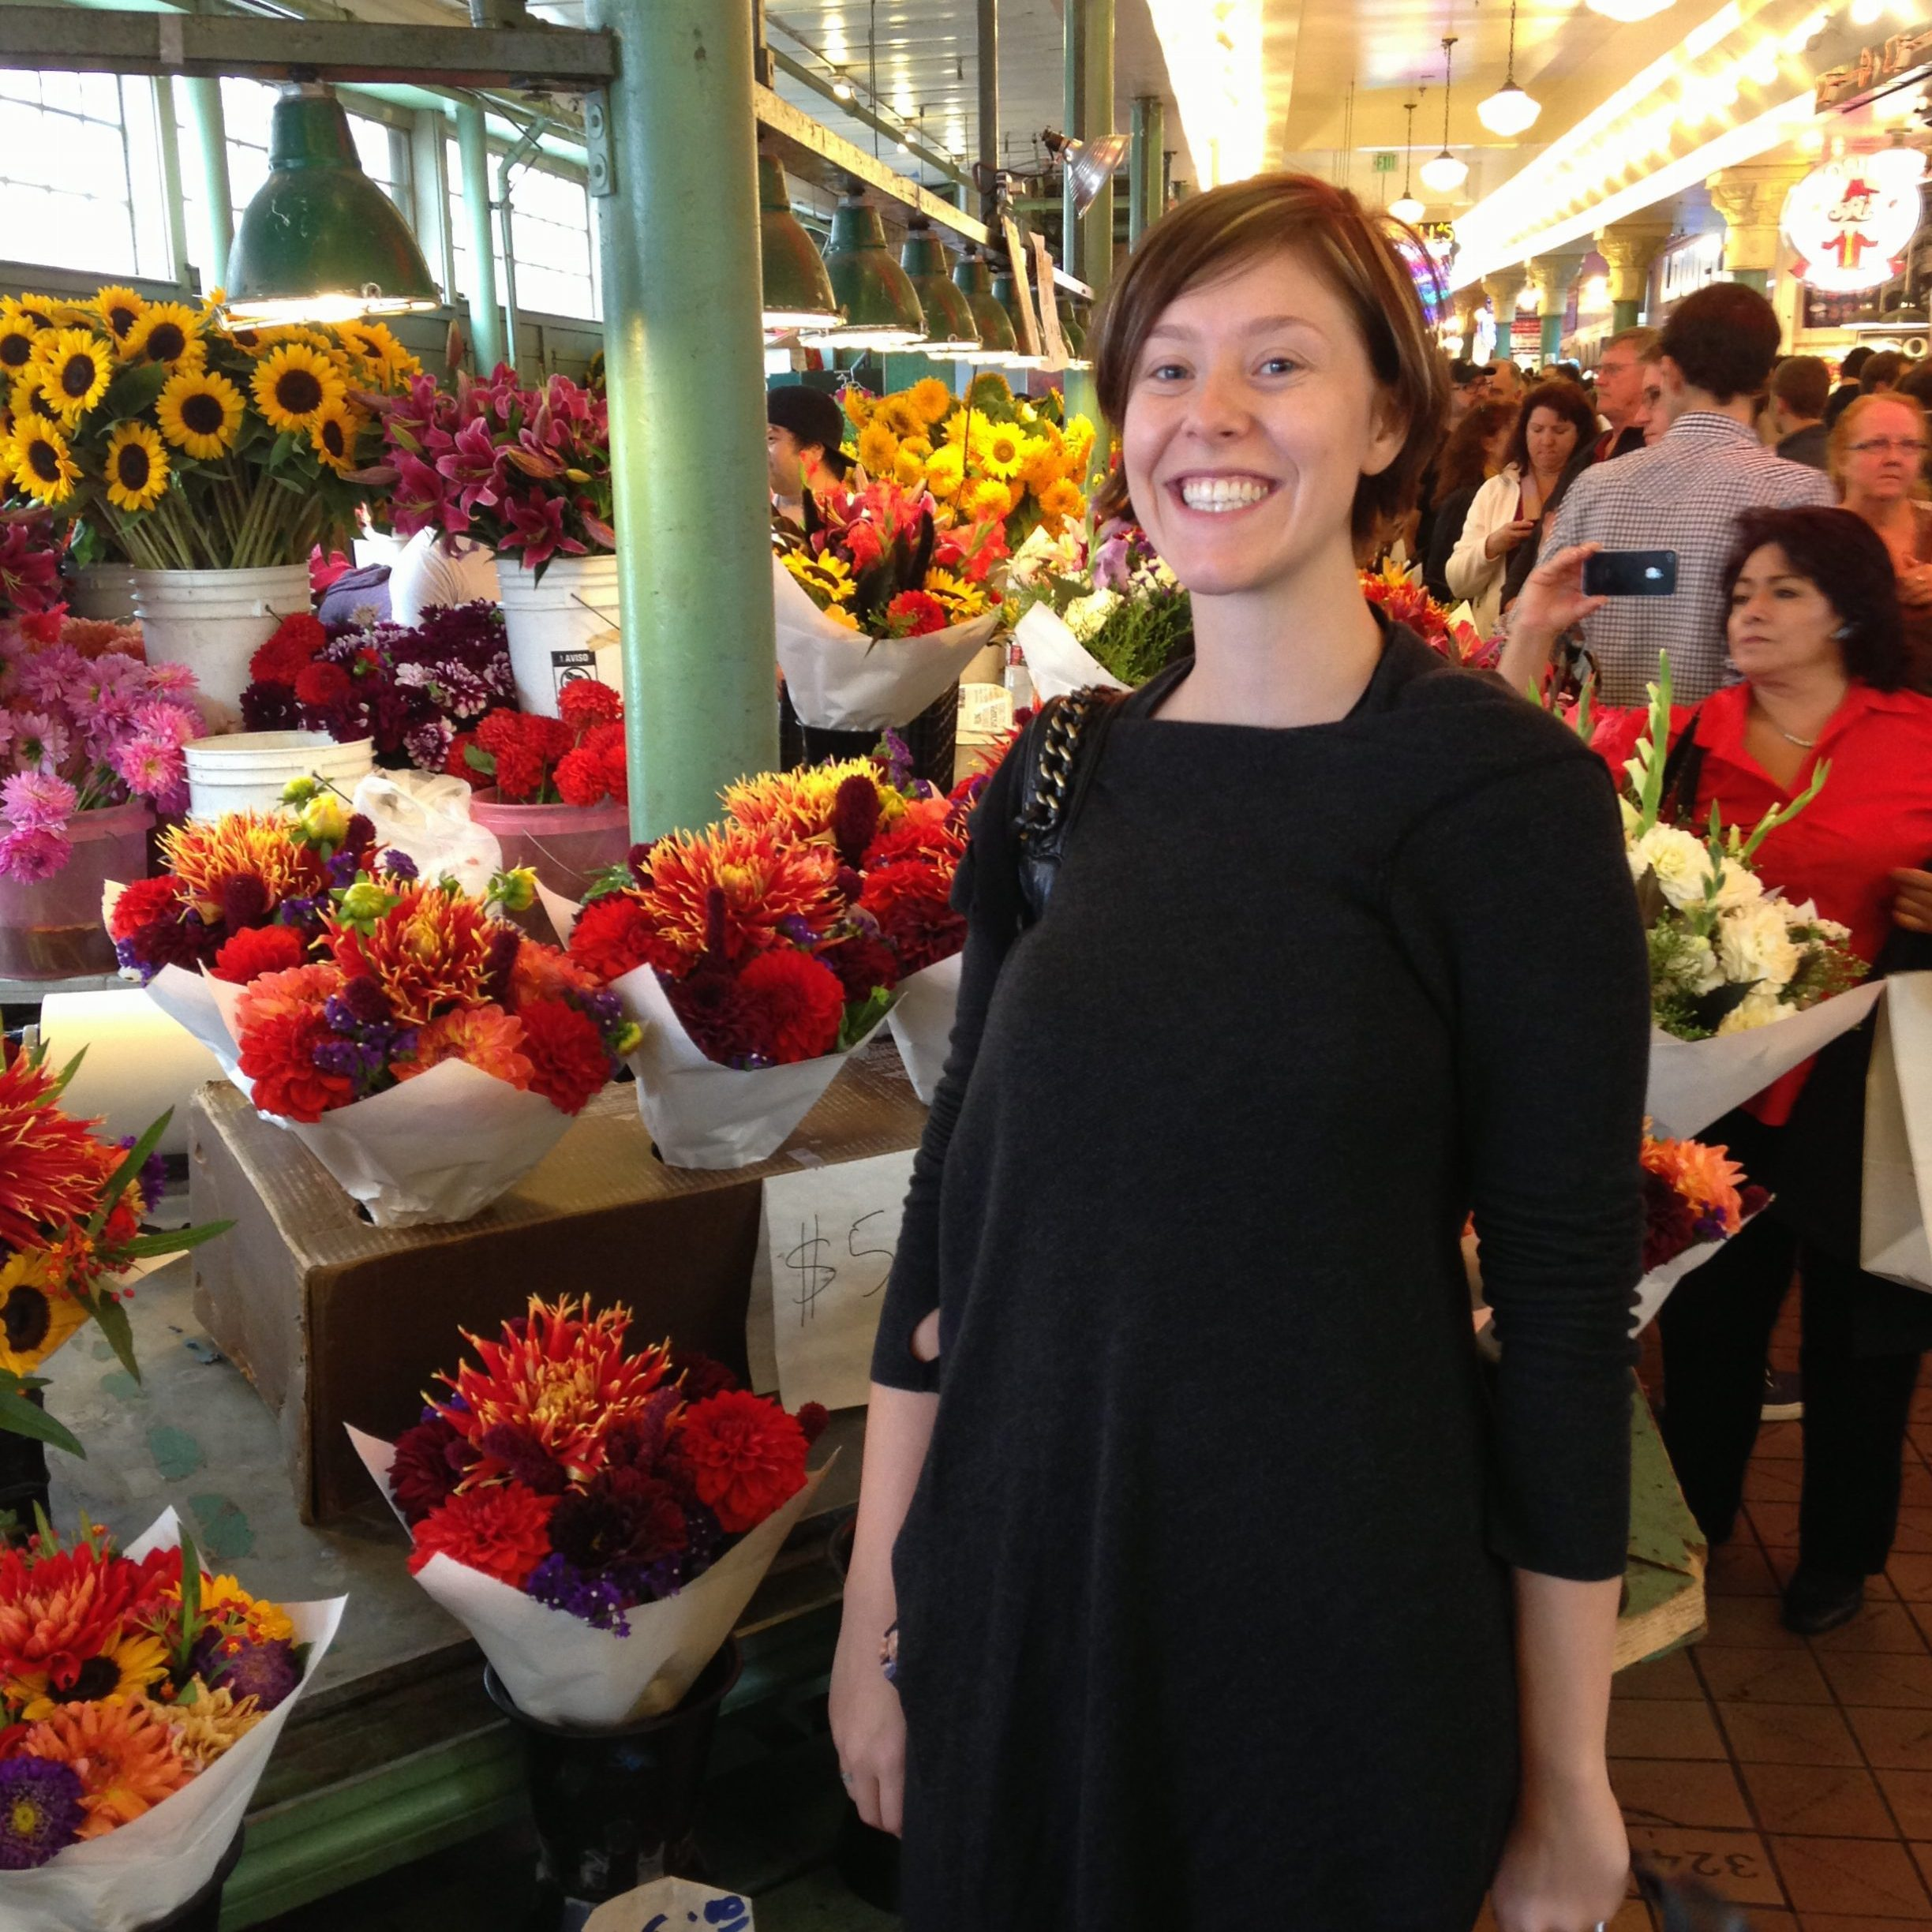 Dr Anna Marie at the Farmers Market in Seattle WA